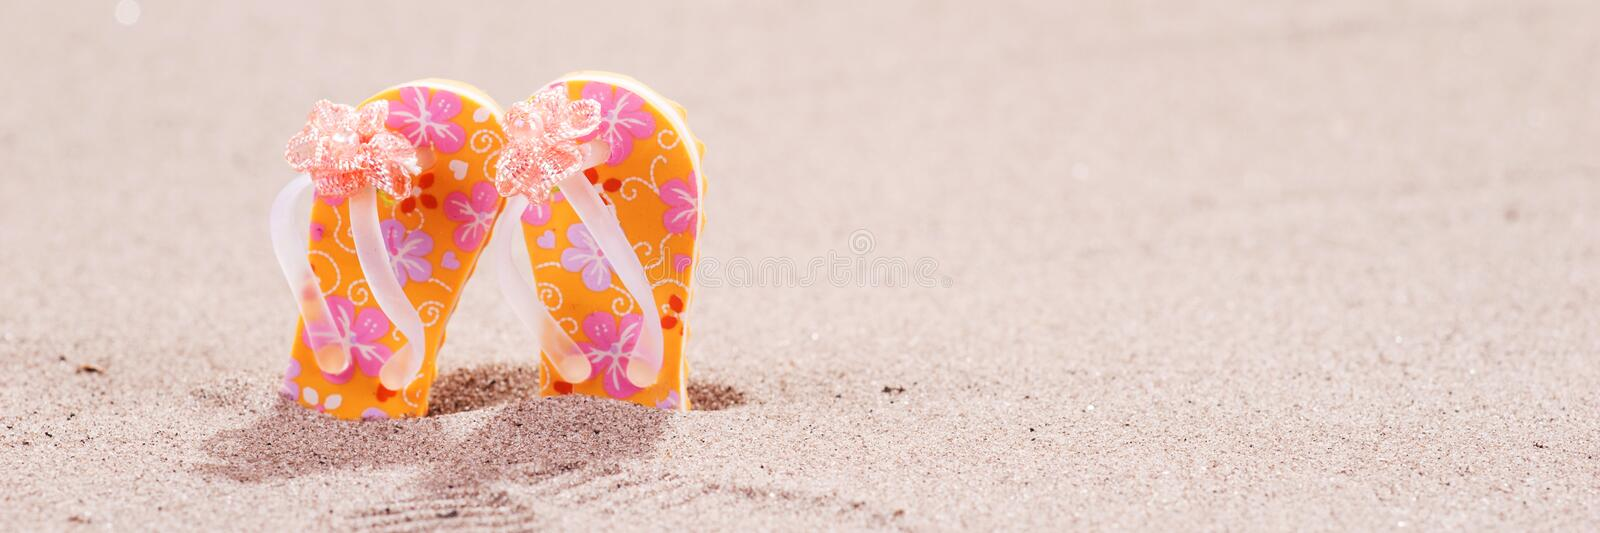 Colorful flip flops with flowers on the beach. Colorful flip flops with flowers on the sandy beach royalty free stock images